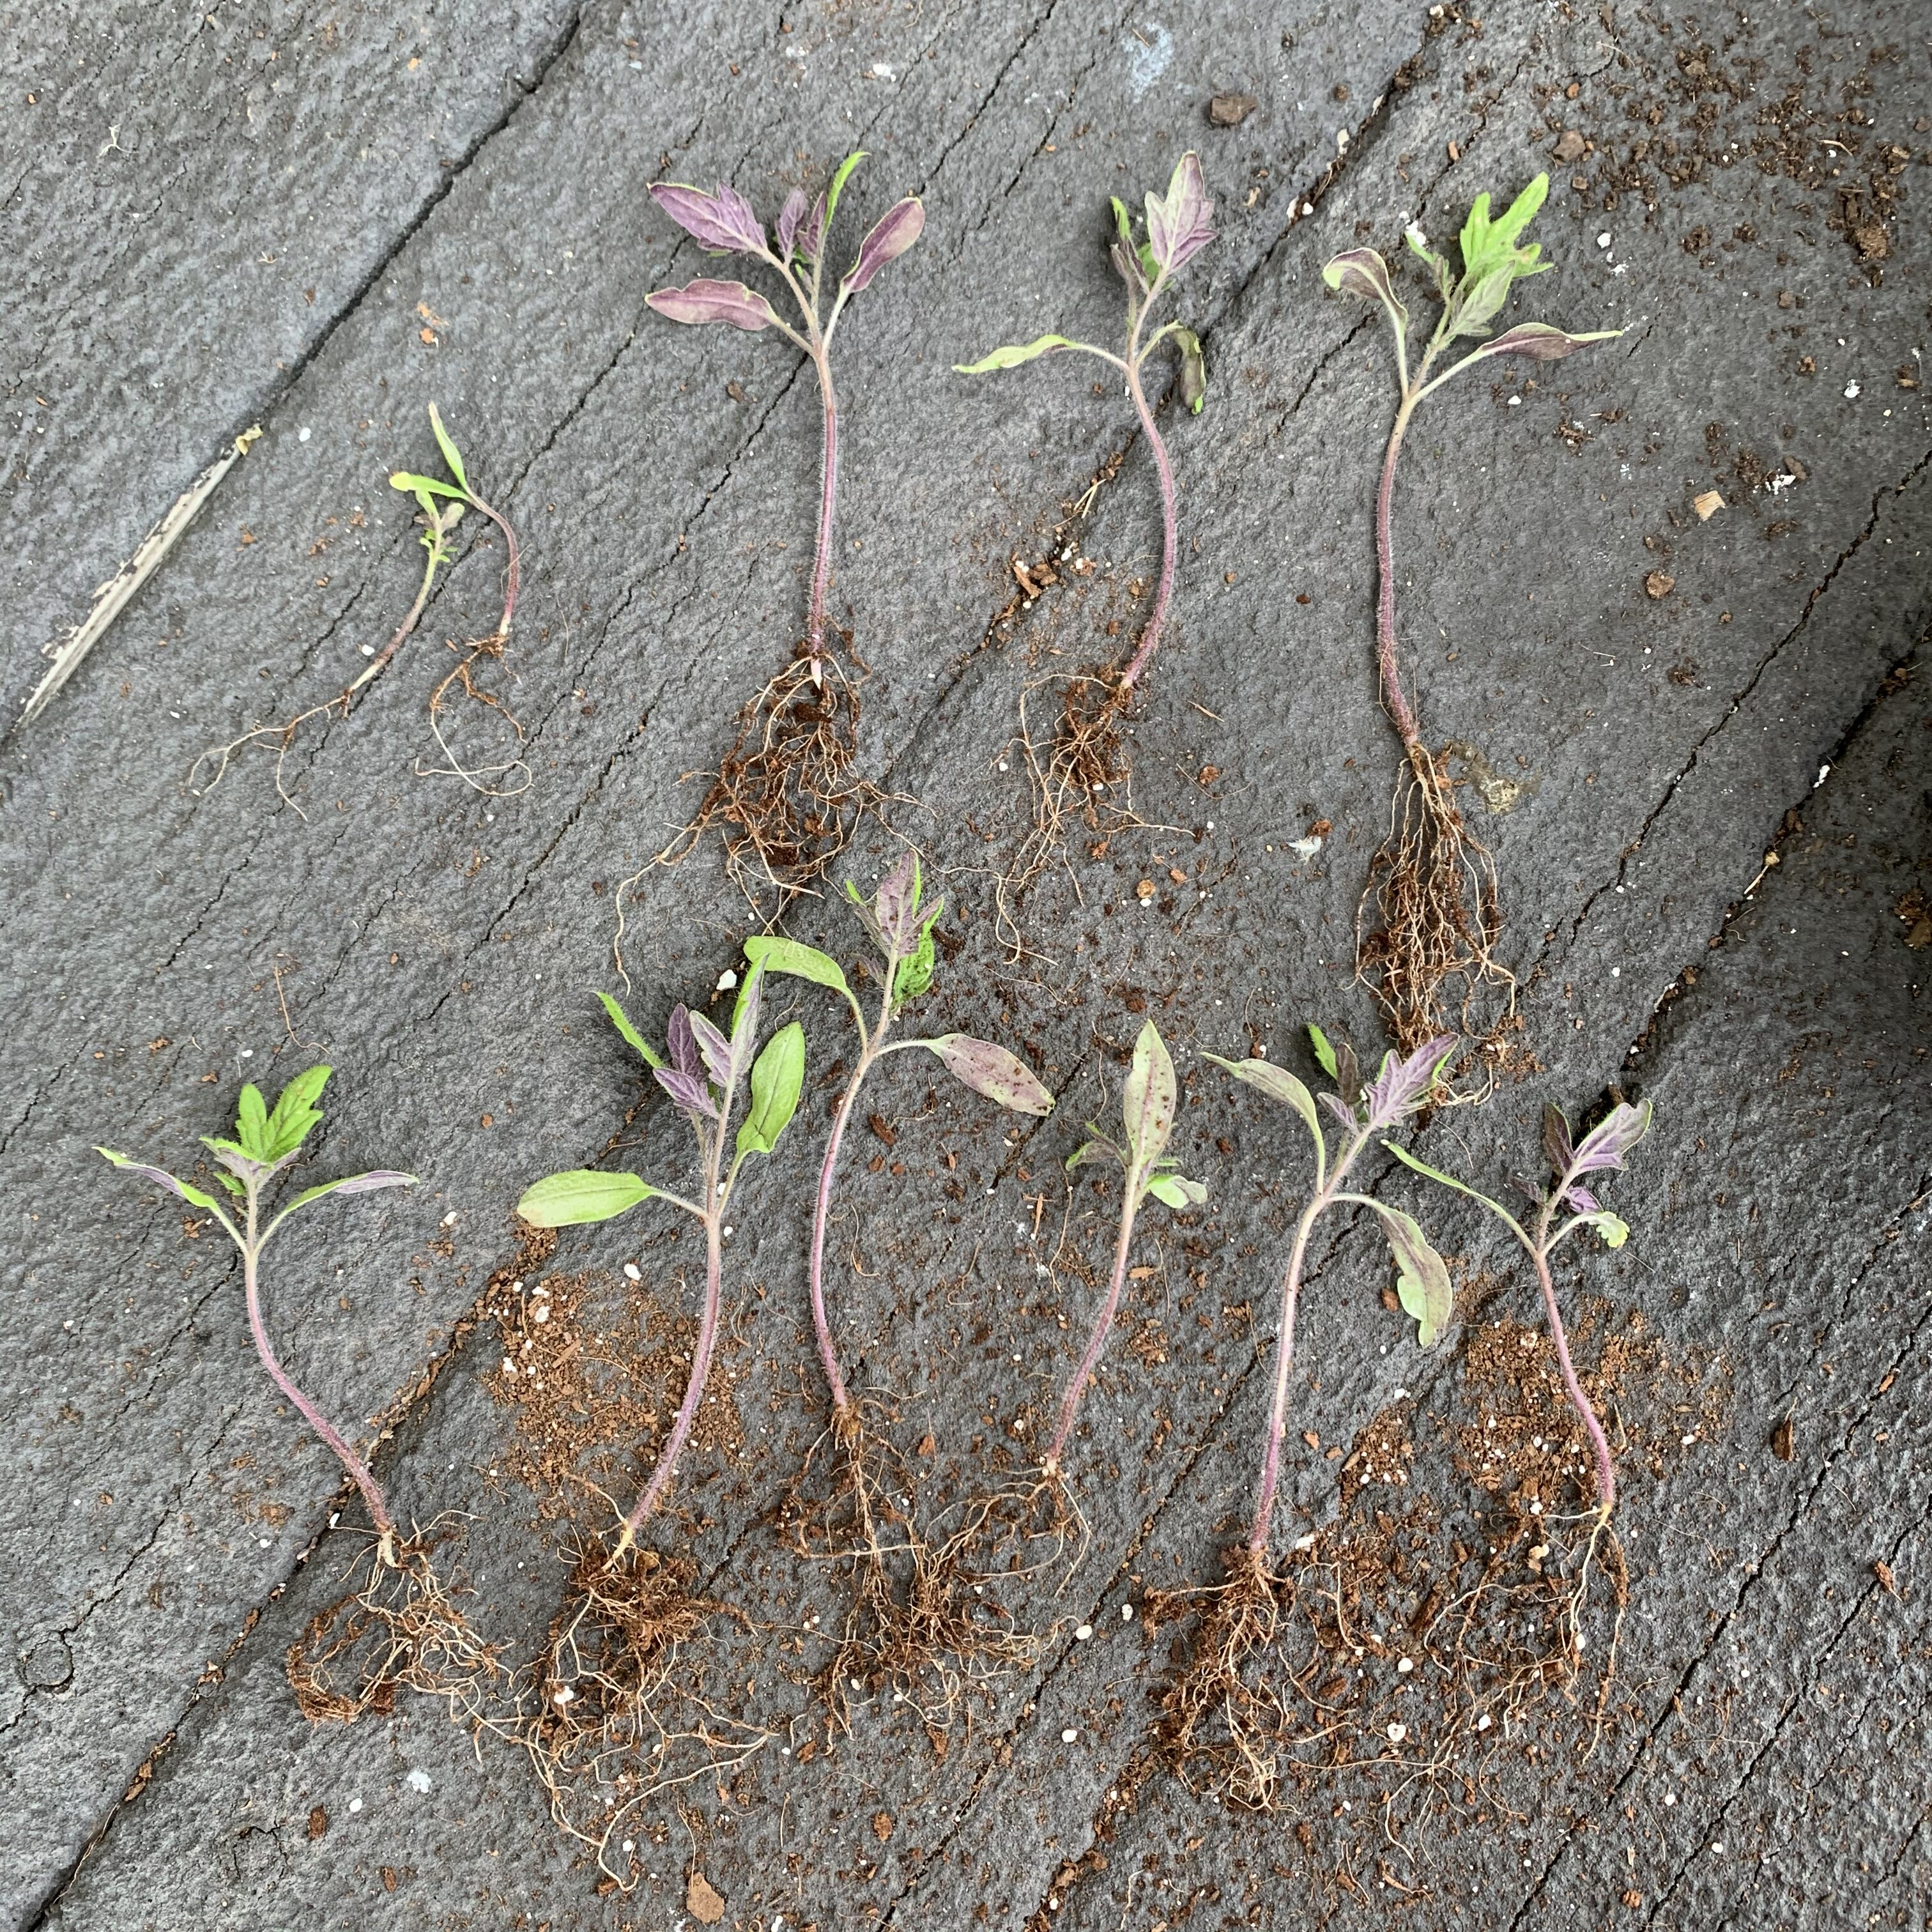 3FEC781F 02F8 4737 A77D 2C4139B0ABC6 Comparing Burpee Organic Seed Starting Mix vs Miracle Gro Moisture Control Potting Mix for transplanted tomato seedlings